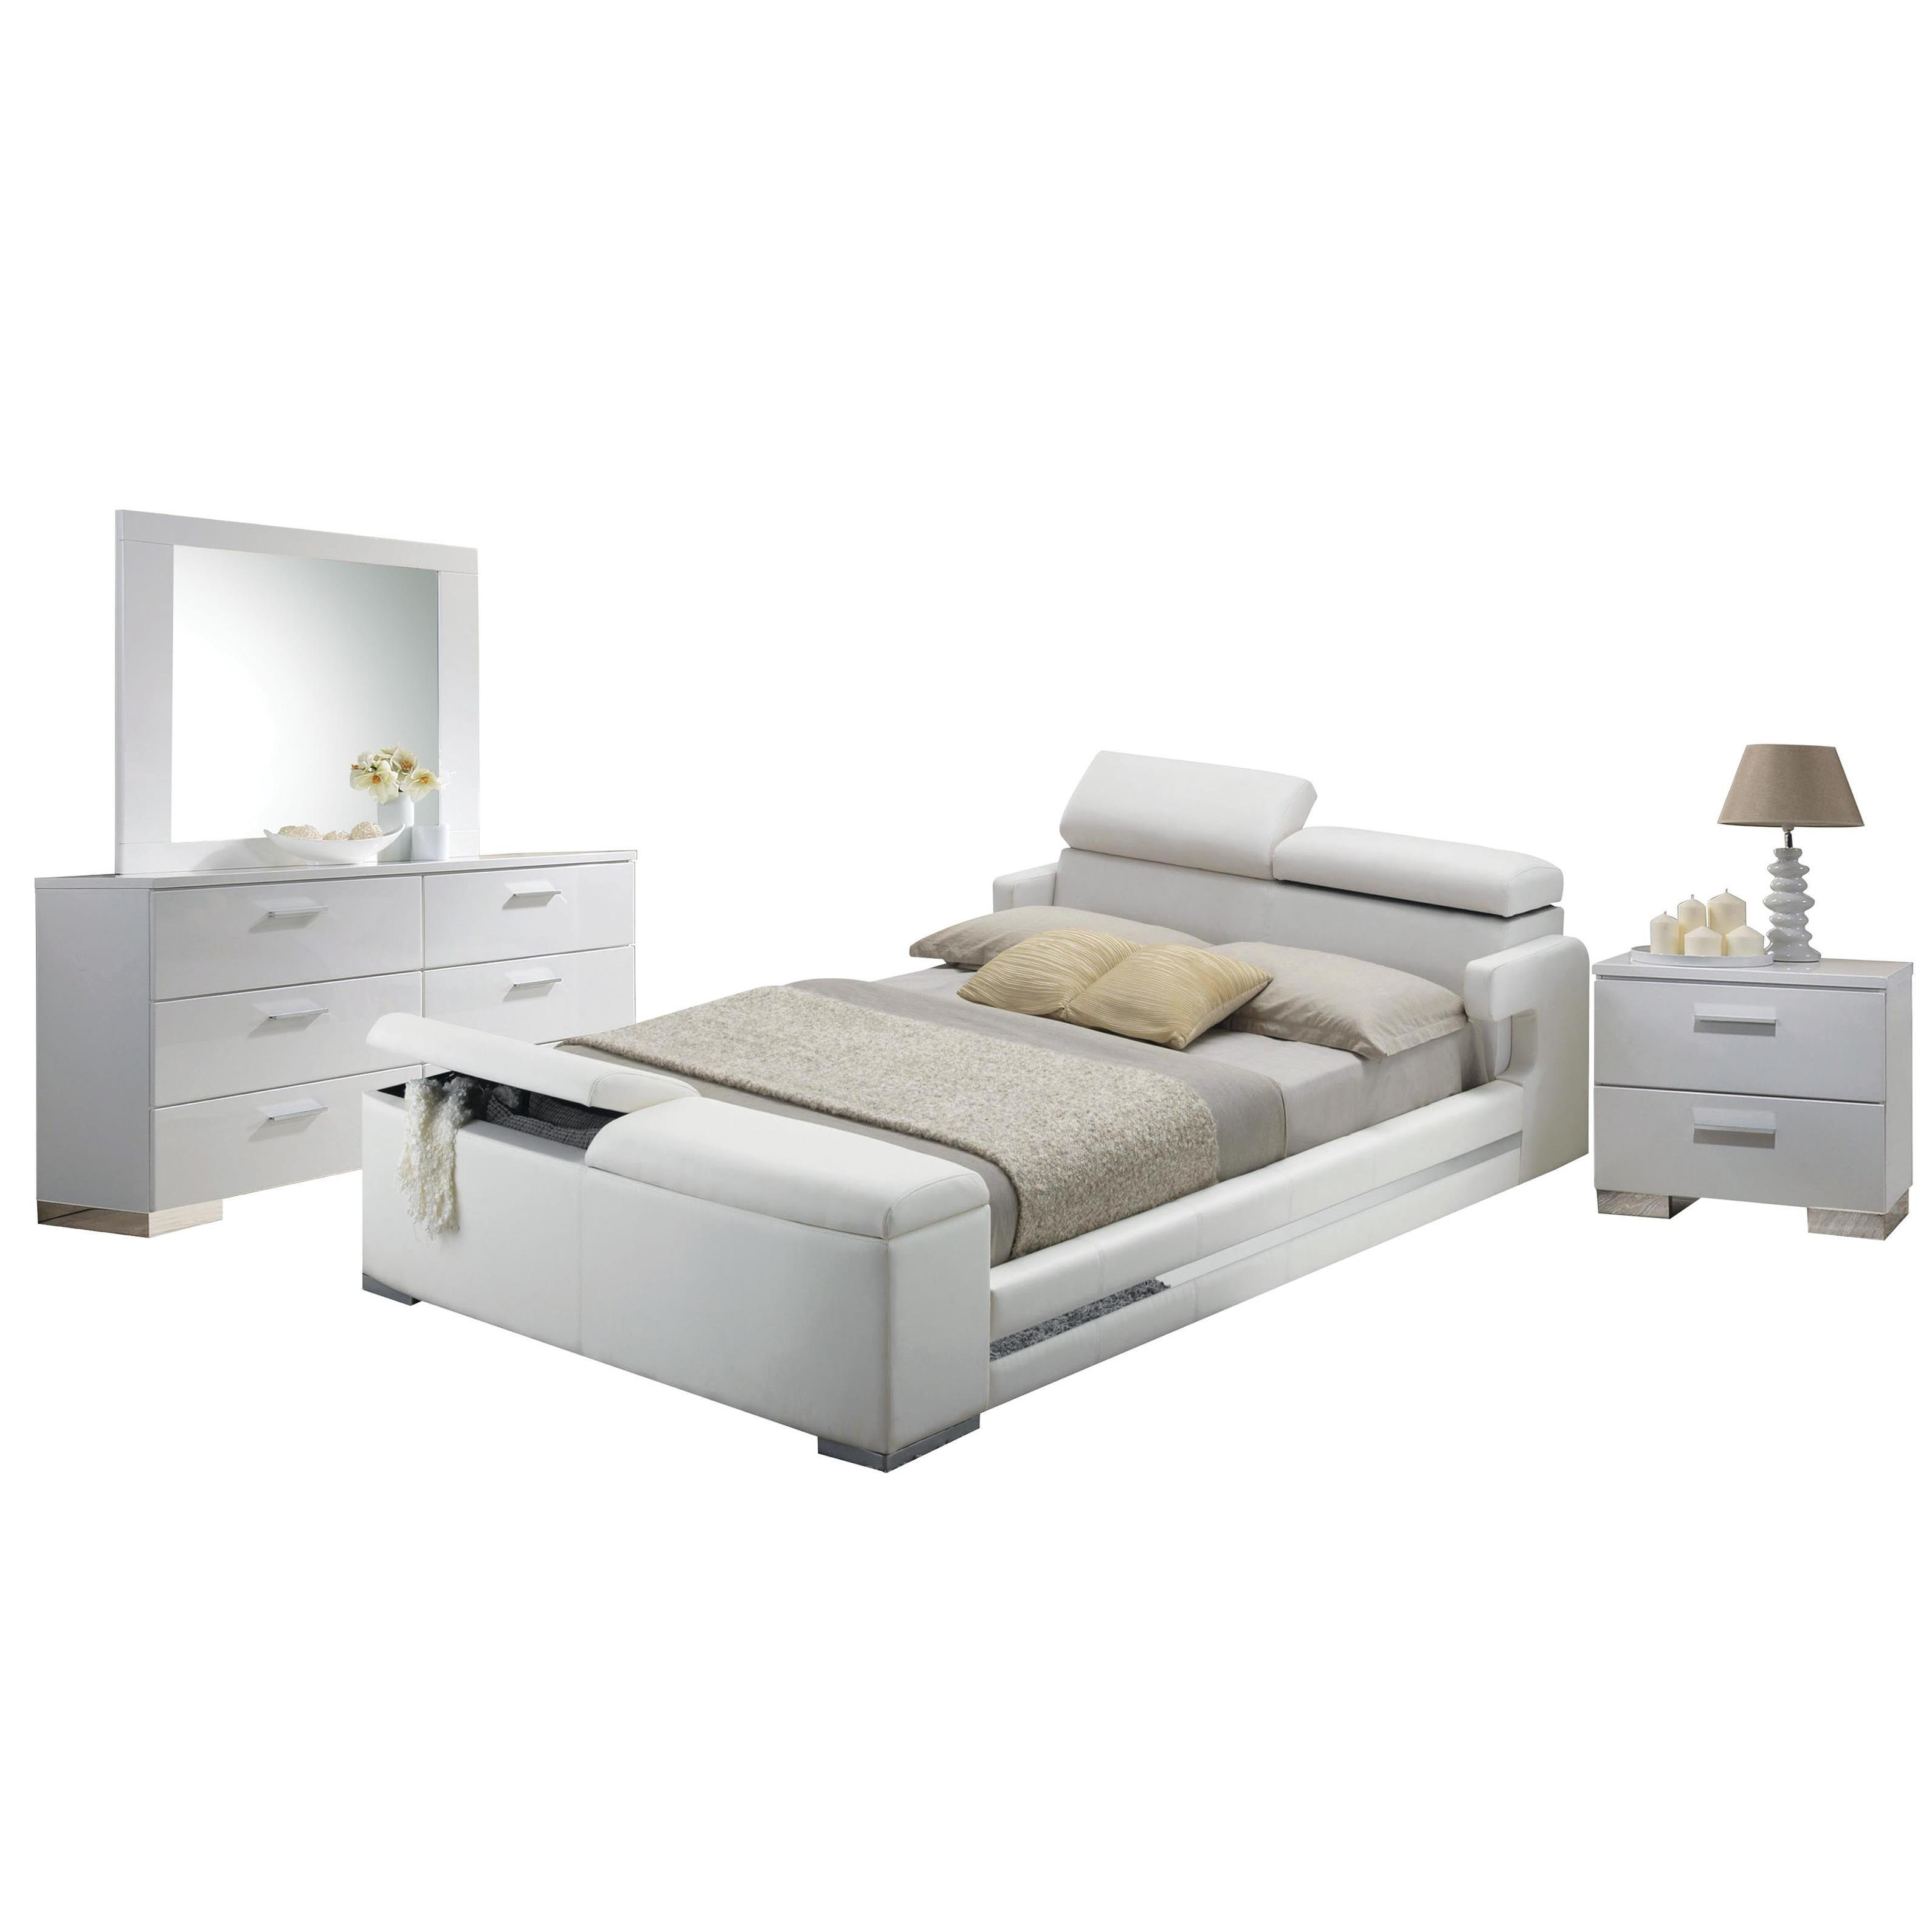 Shop Acme Furniture Layla 4-Piece Bedroom Set, White - Free Shipping ...